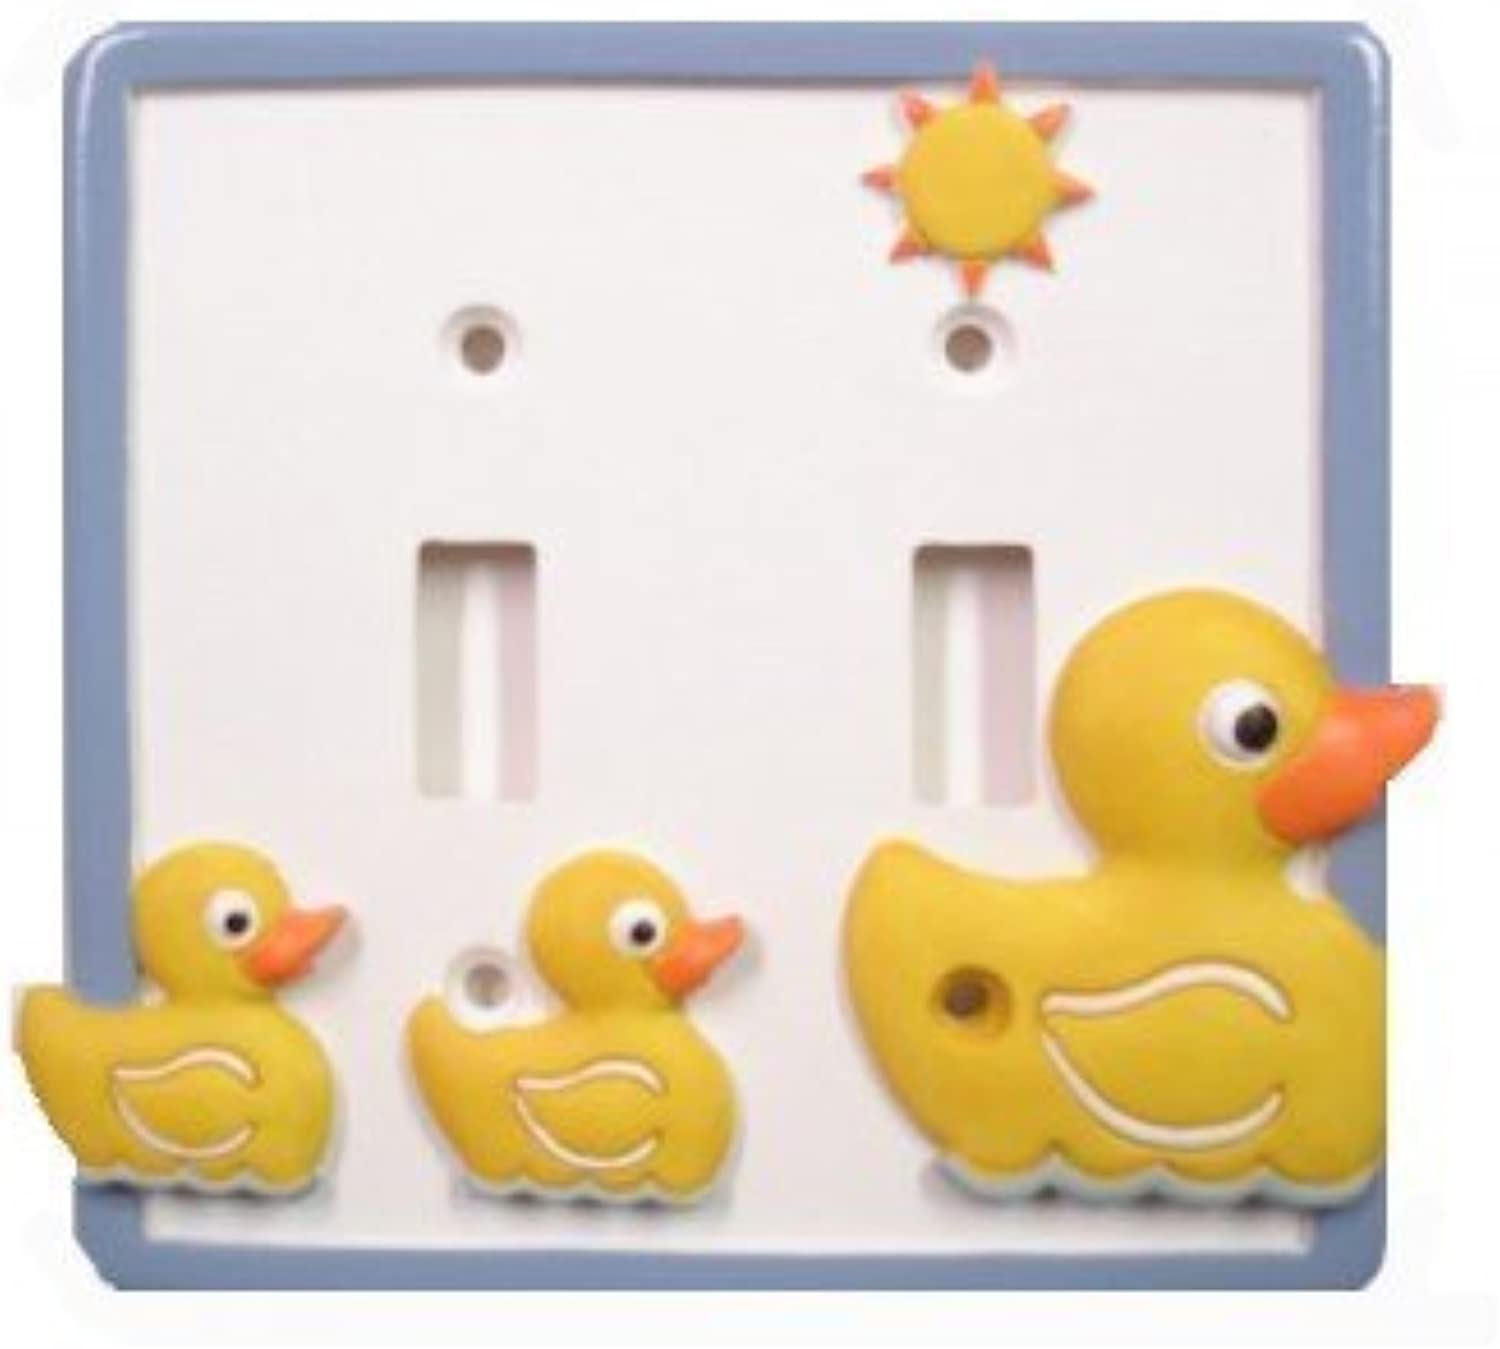 Just Ducky Double Light Switch Plate  Yellow Rubber Duck Bathroom Decor by Borders Unlimited